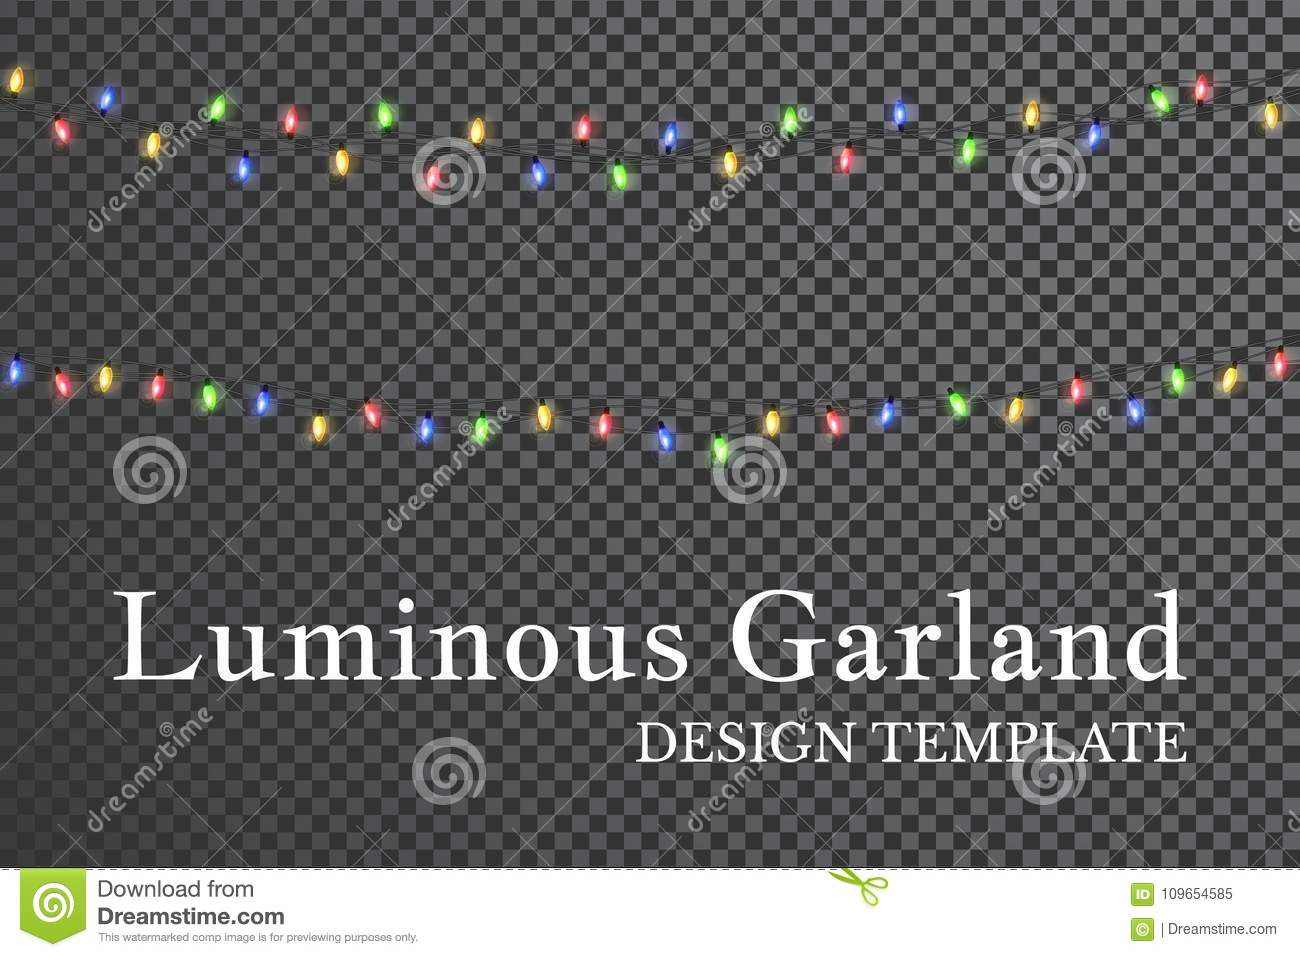 Color garland, festive decorations. Glowing christmas lights isolated on transparent background